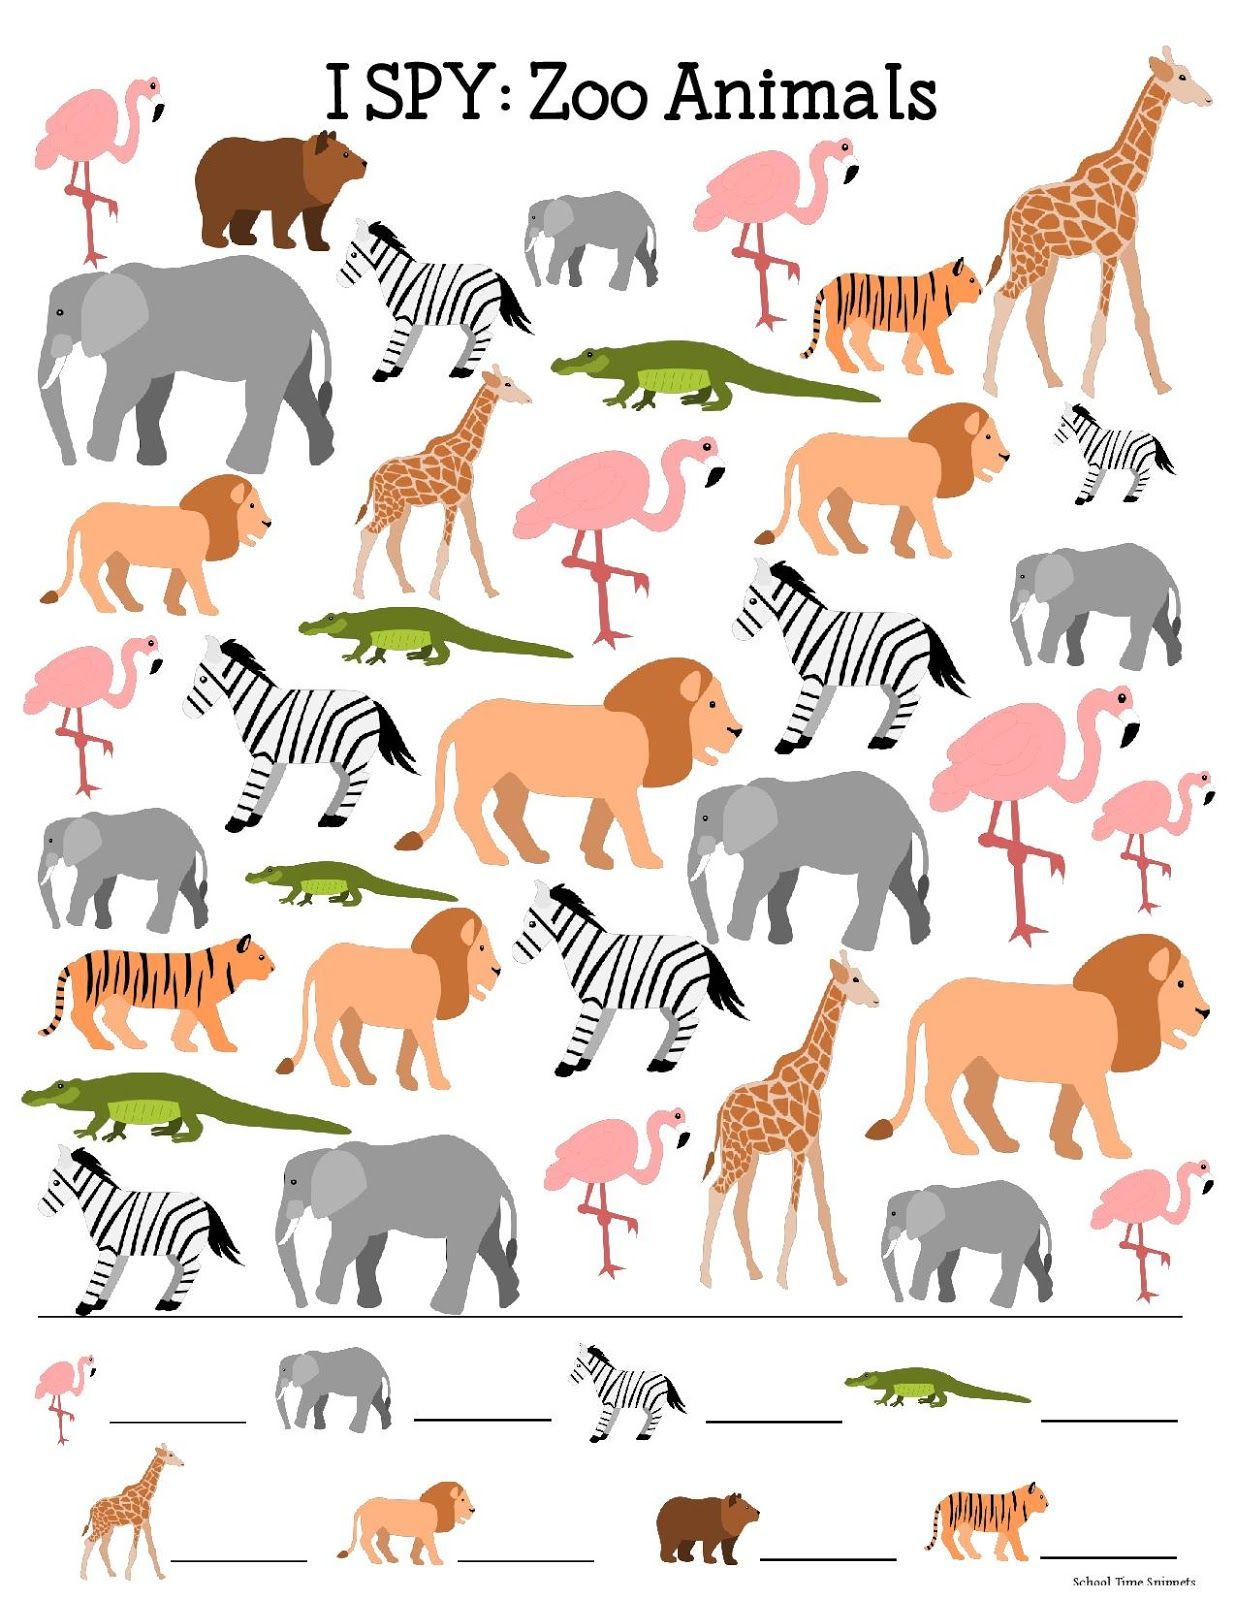 graphic about Animal Printable known as Zoo Topic I SPY Printable zoo Preschool zoo topic, Zoo